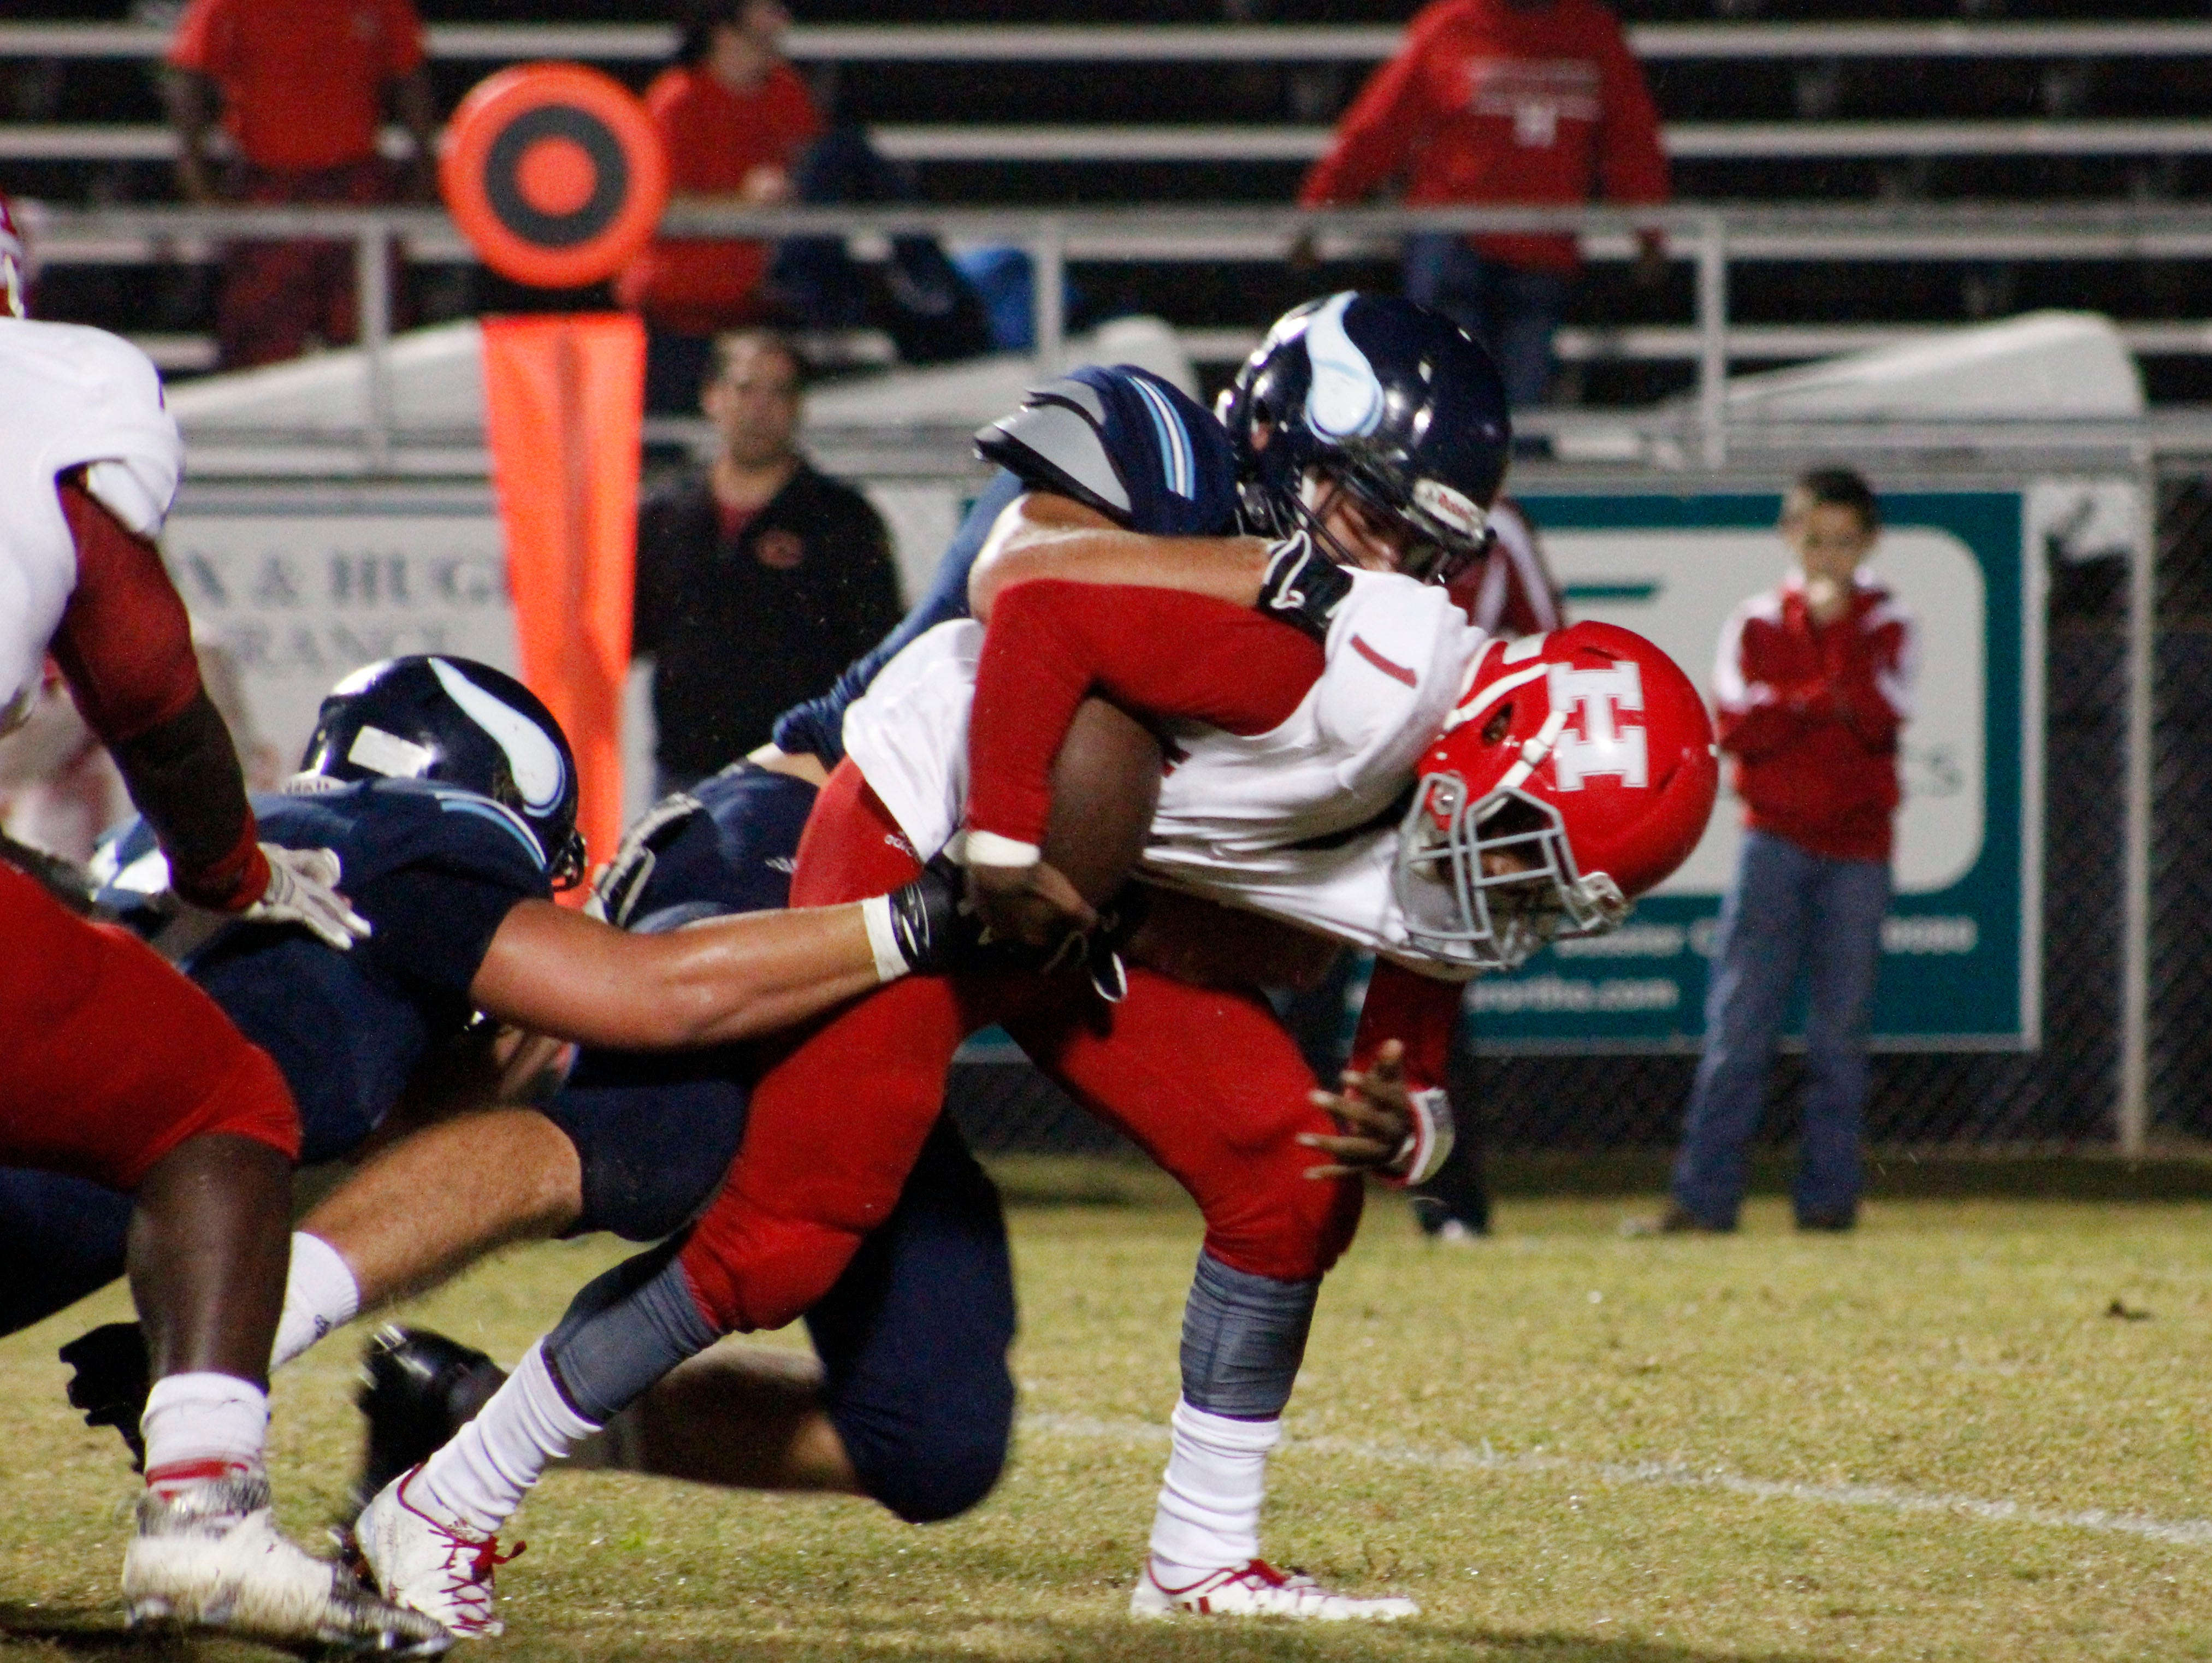 The Airline High School Vikings football team host the Haughton High School Buccaneers on Friday night in Bossier City.